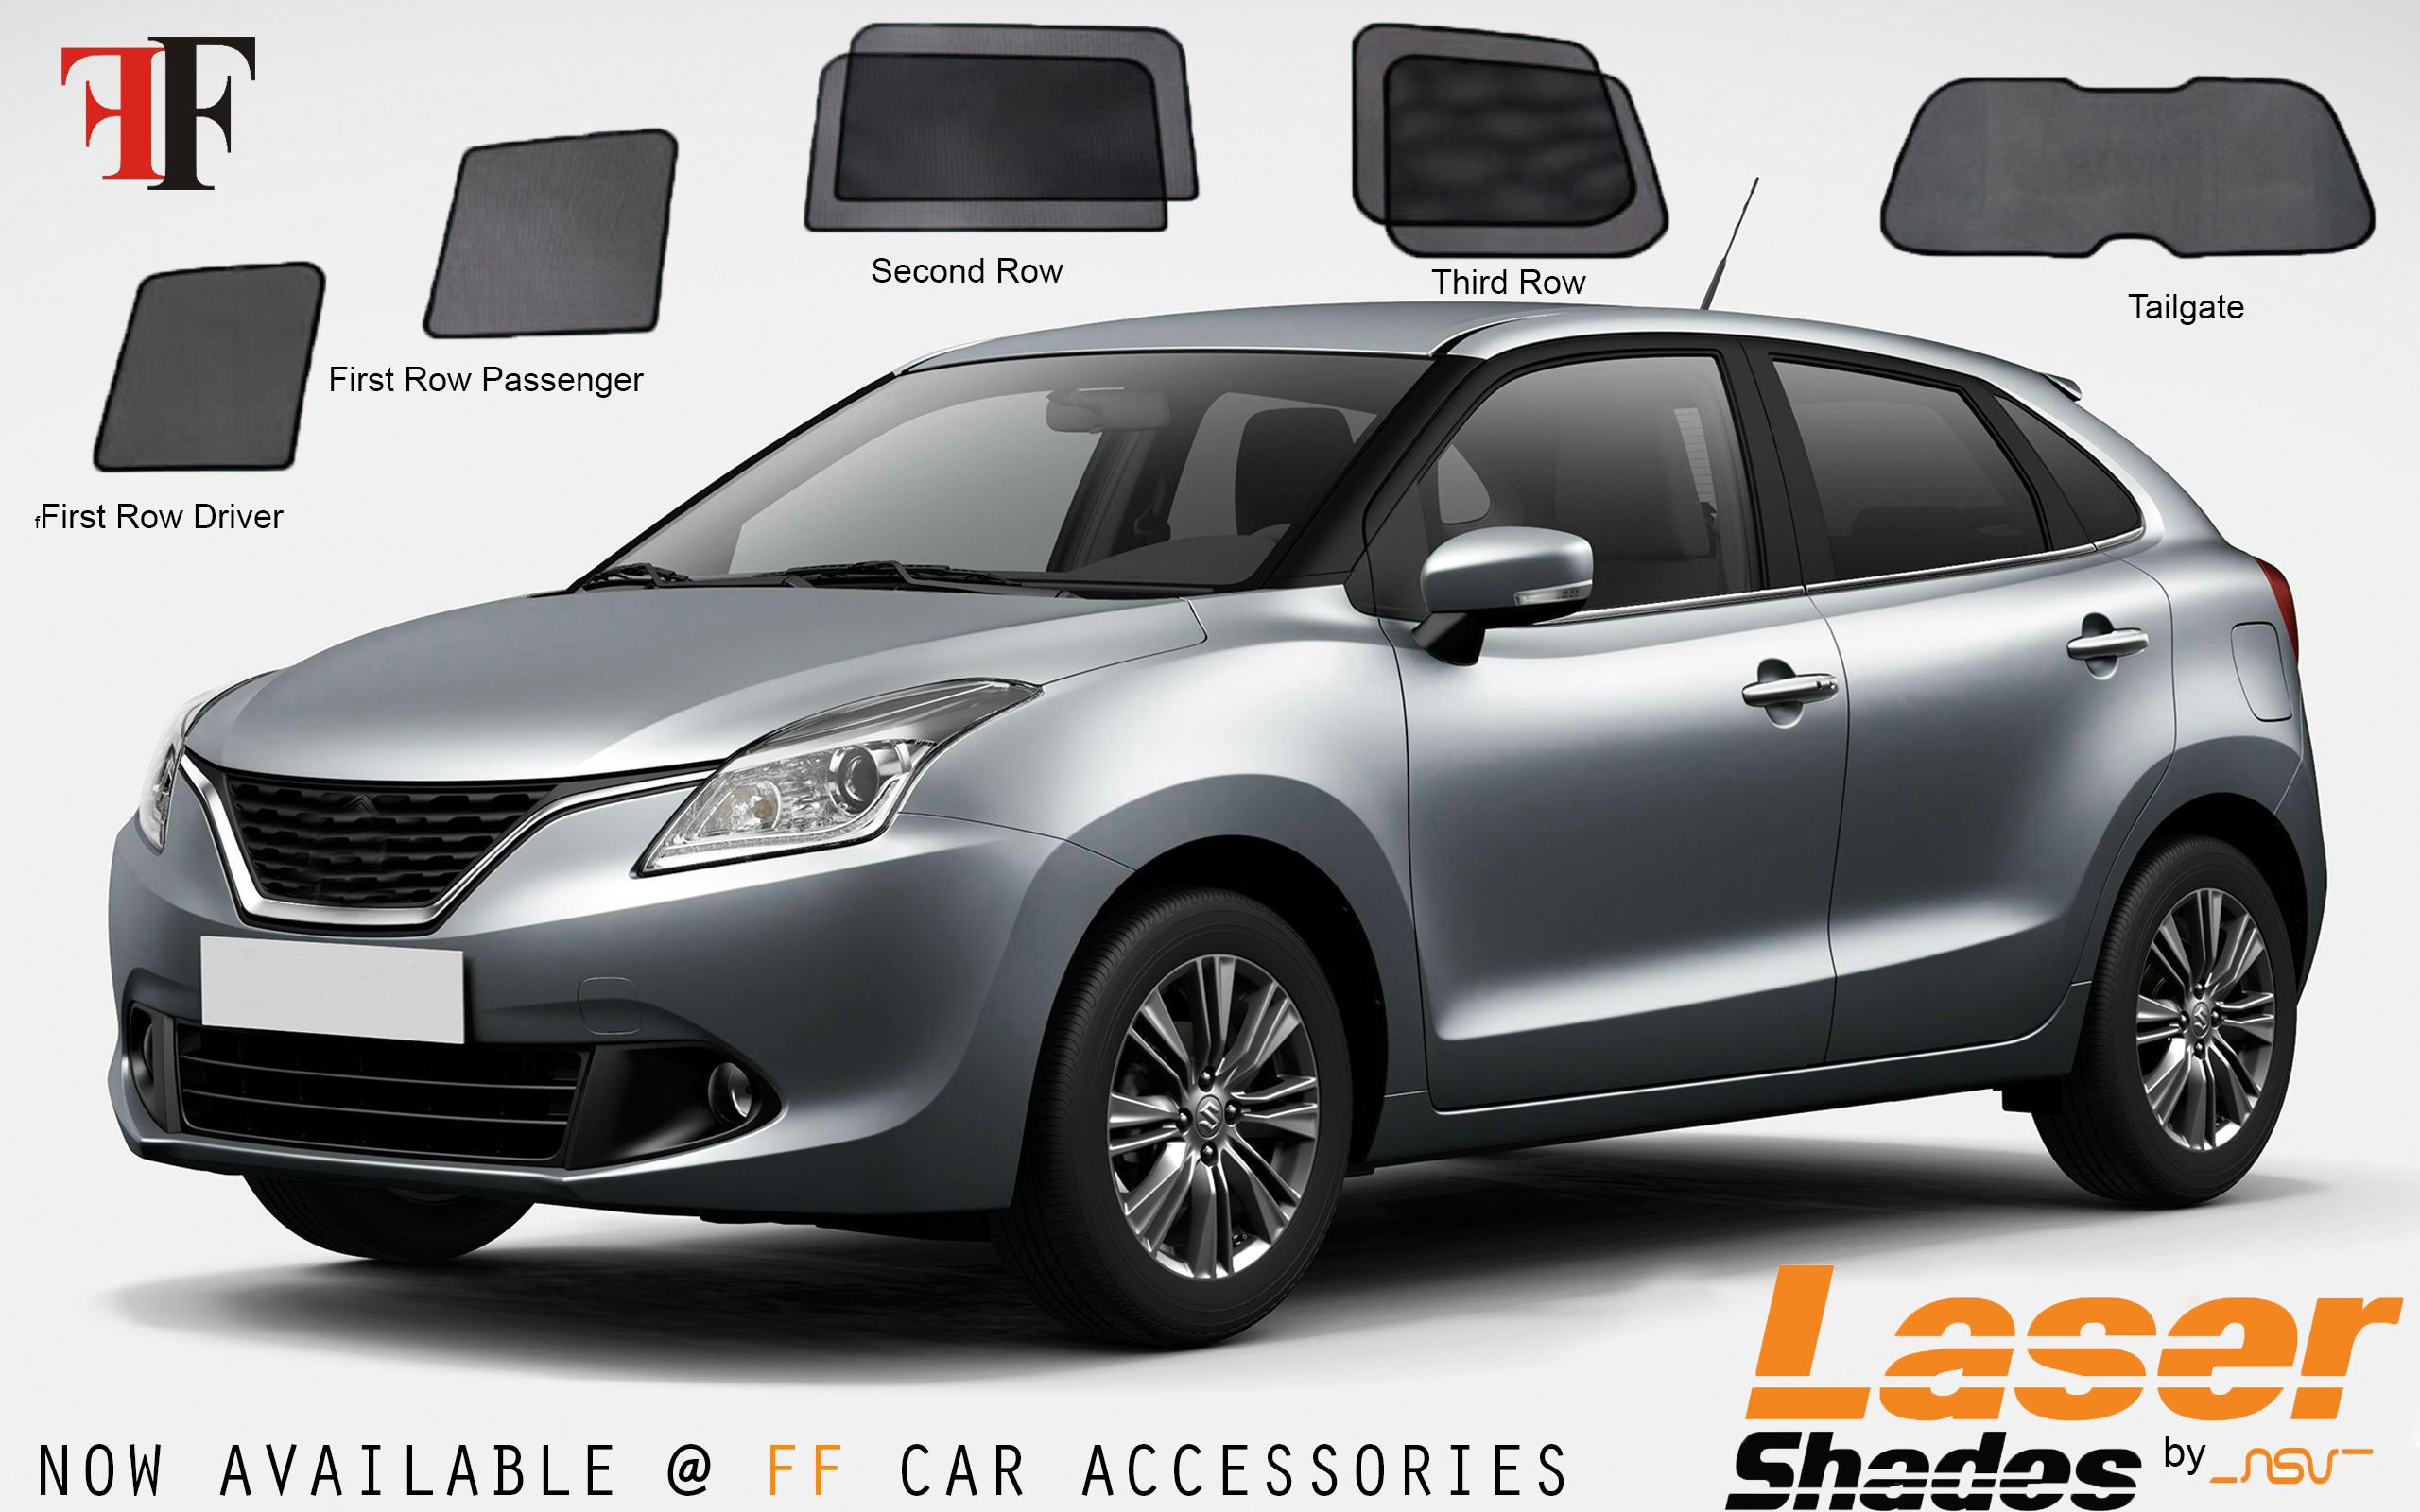 Nsv Laser Shades For Maruthi Baleno Avail Ff Car Accessories Nsv